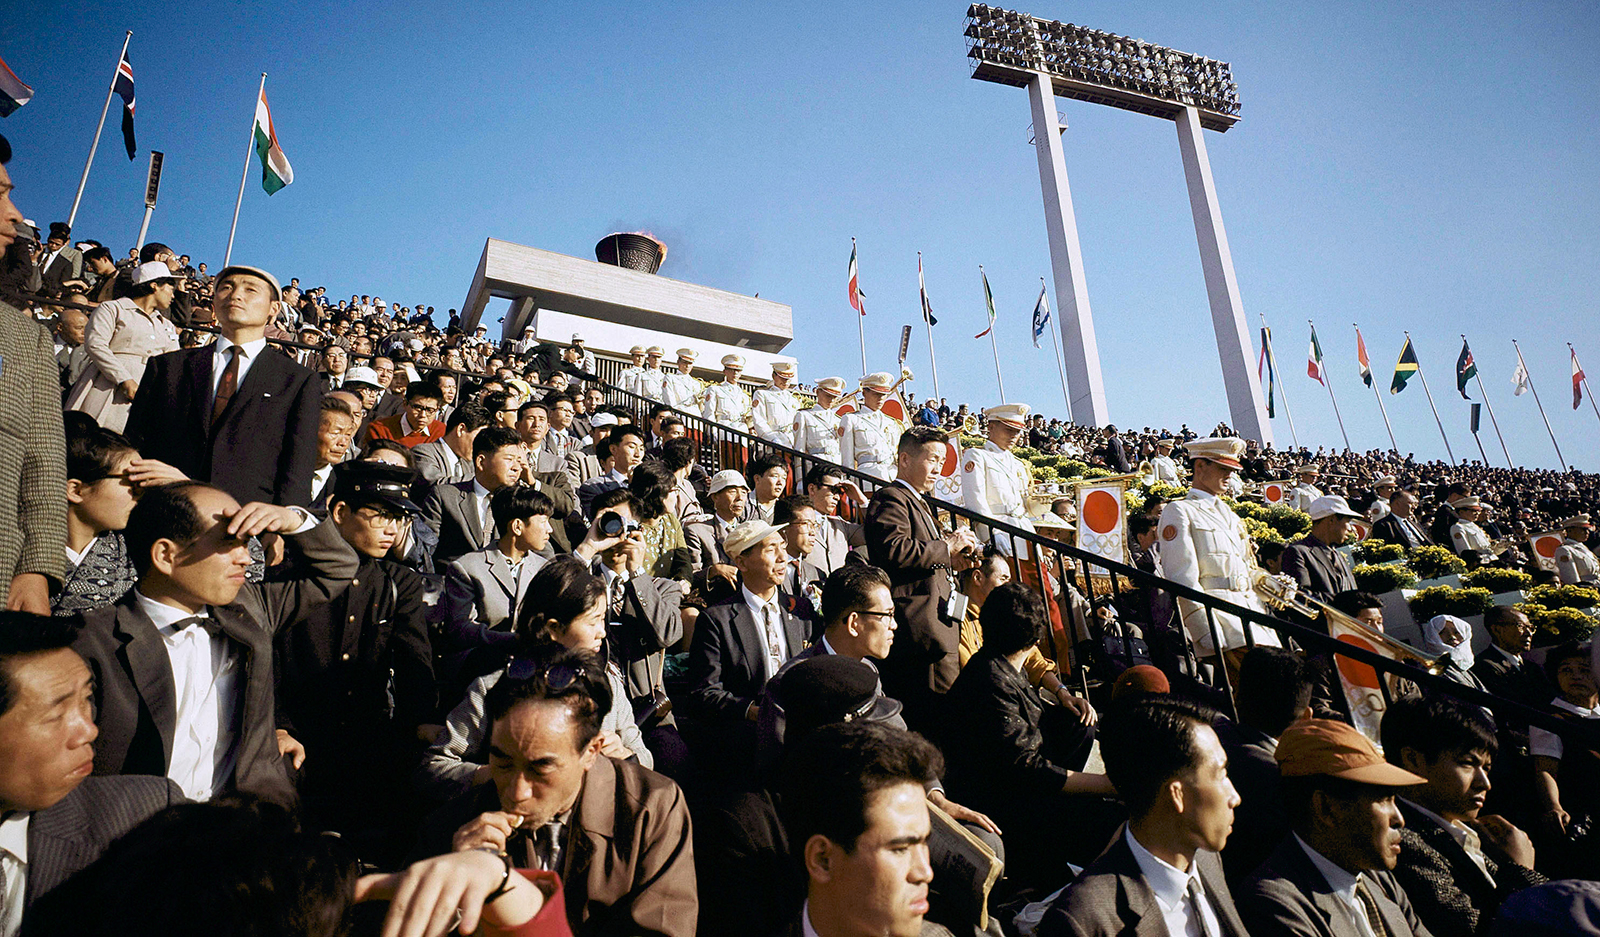 People attend the opening ceremony of the 1964 Tokyo Olympics.